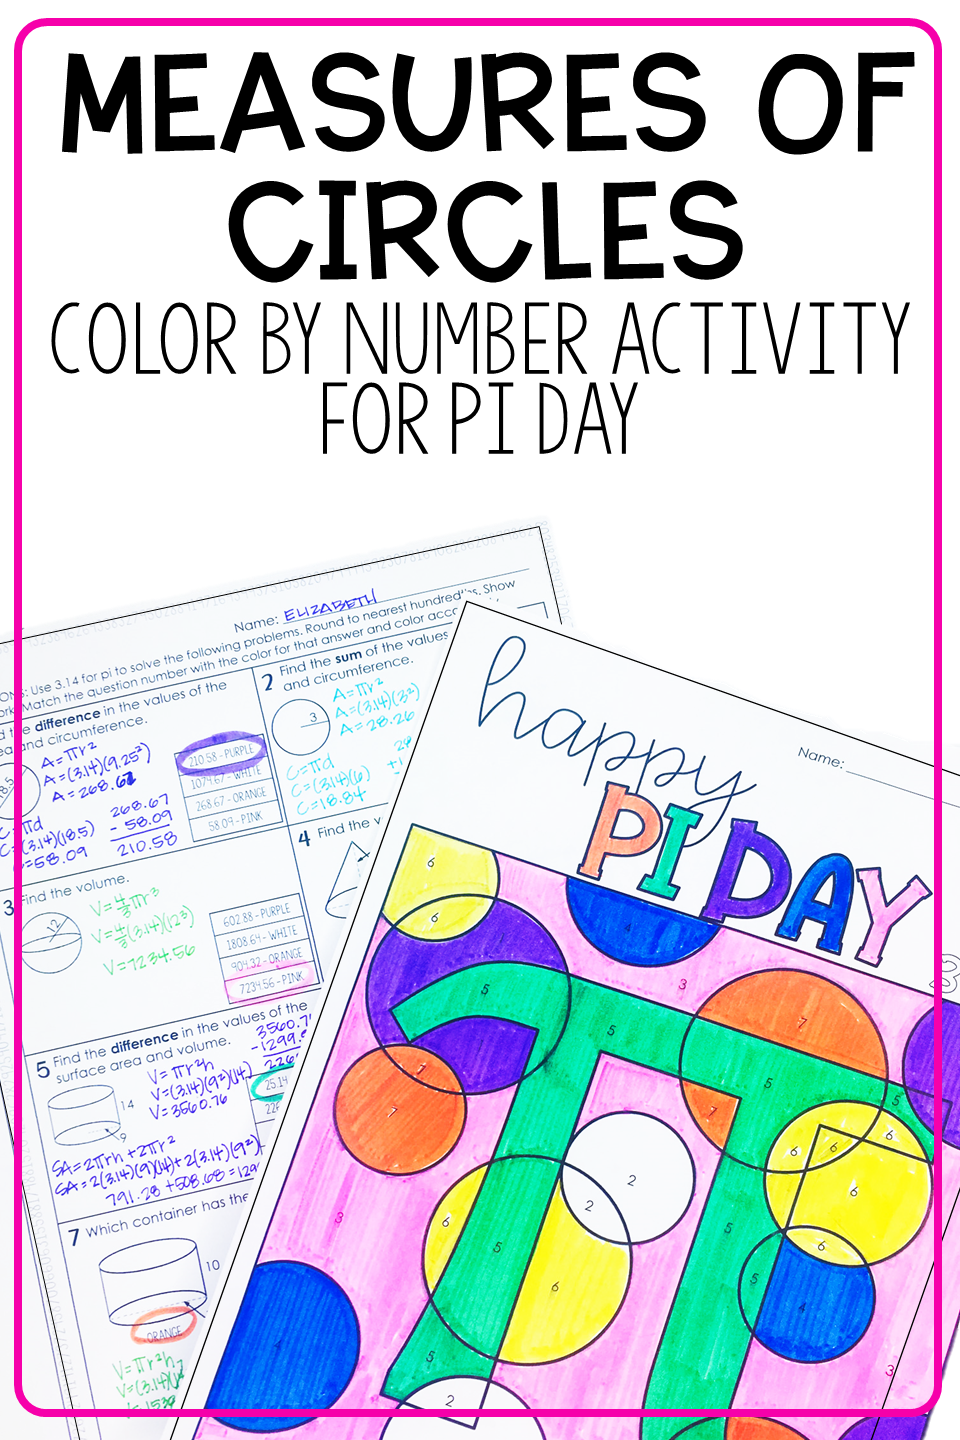 Pi Day Coloring Activity Area Circumference Surface Area Volume High School Math Activities Color Activities 9th Grade Math [ 1440 x 960 Pixel ]